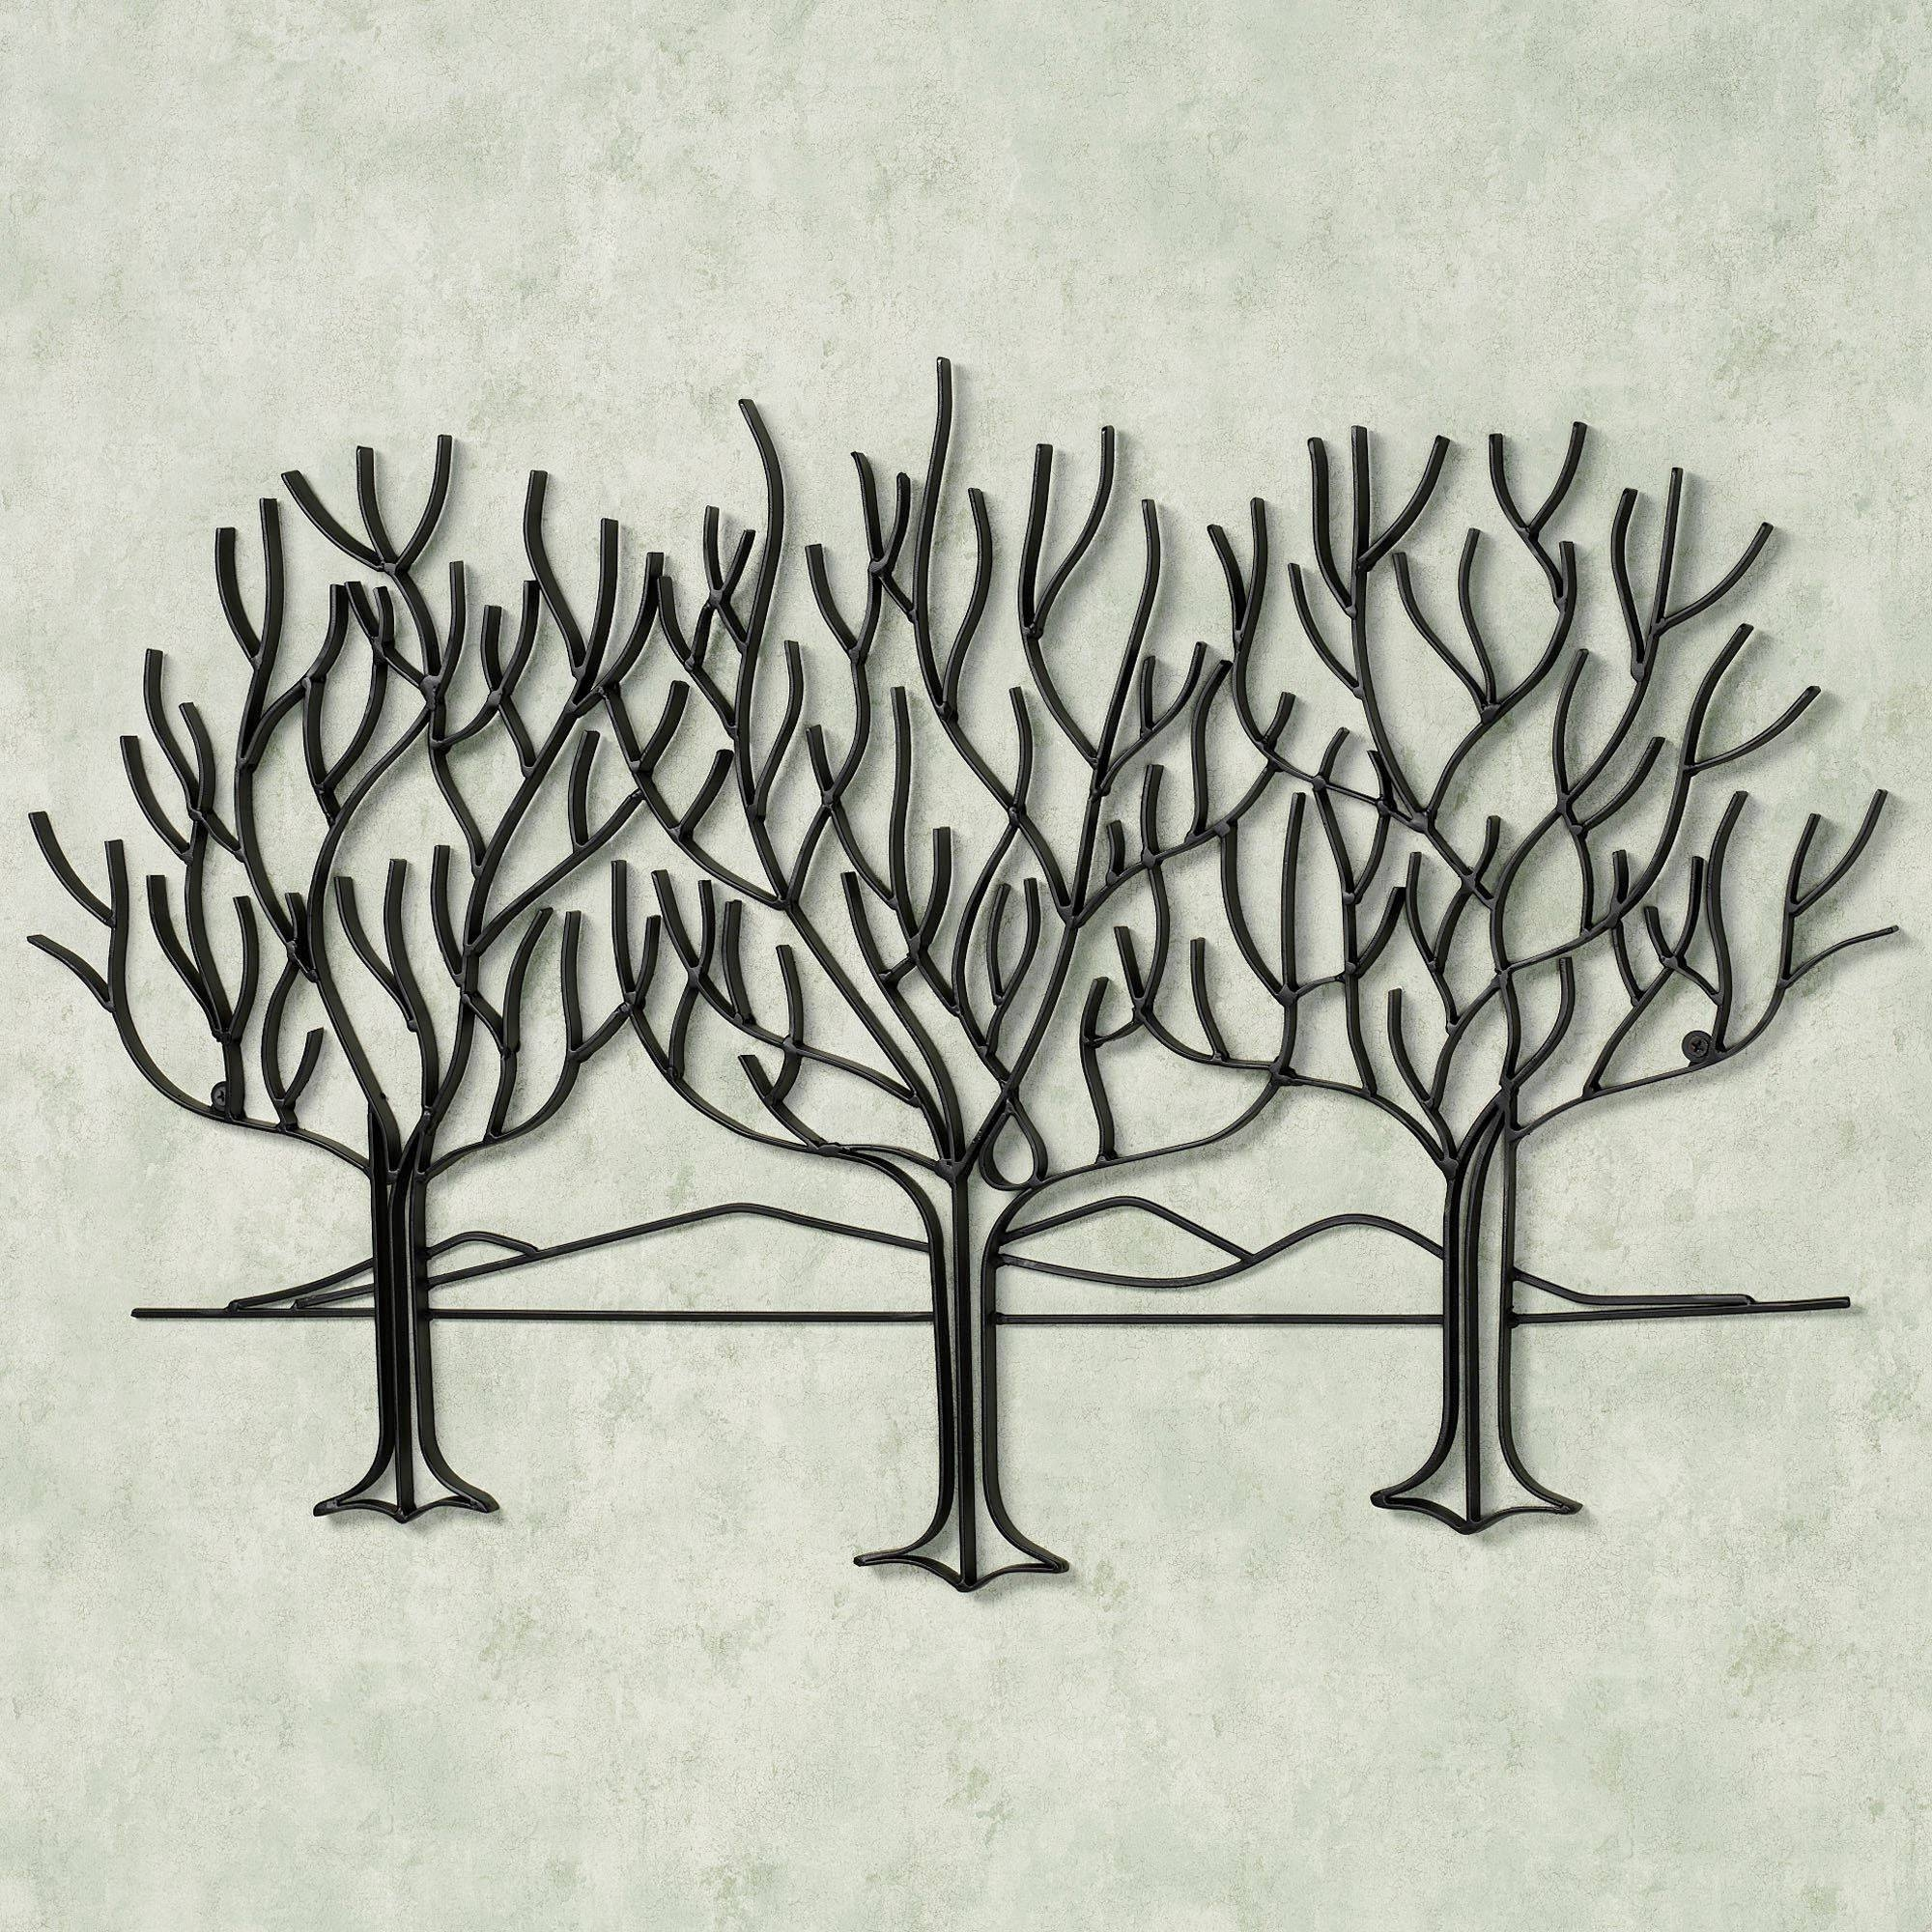 Wall Art Designs: Metal Wall Art Trees Black Metal Wall Art Olive Pertaining To Current Metal Wall Art Tree (View 19 of 20)